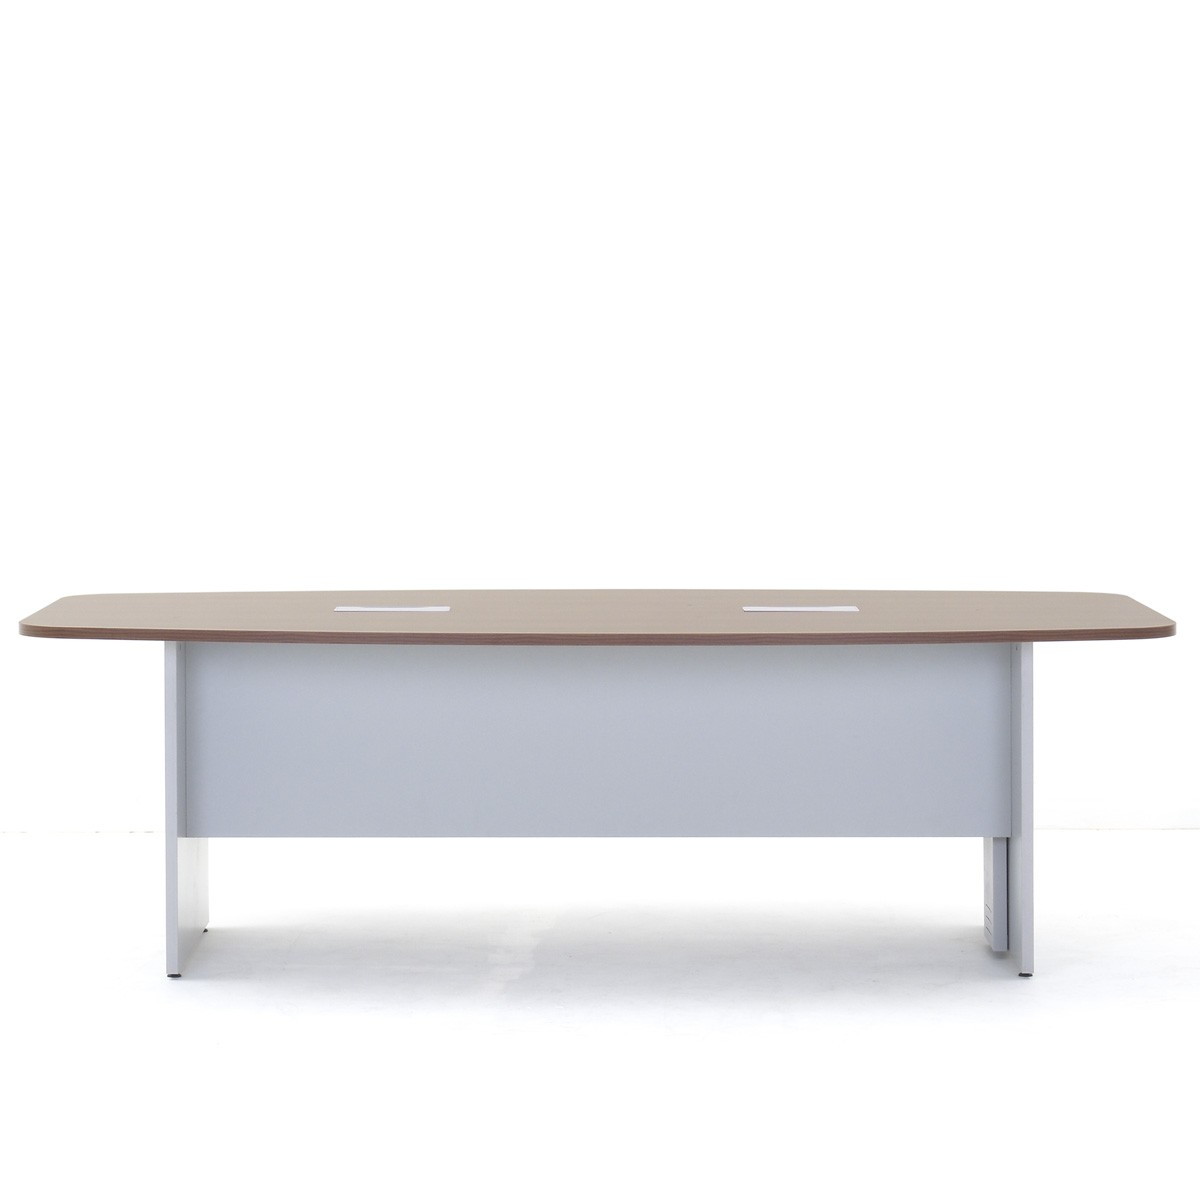 1800mm - Versaline Meeting Table